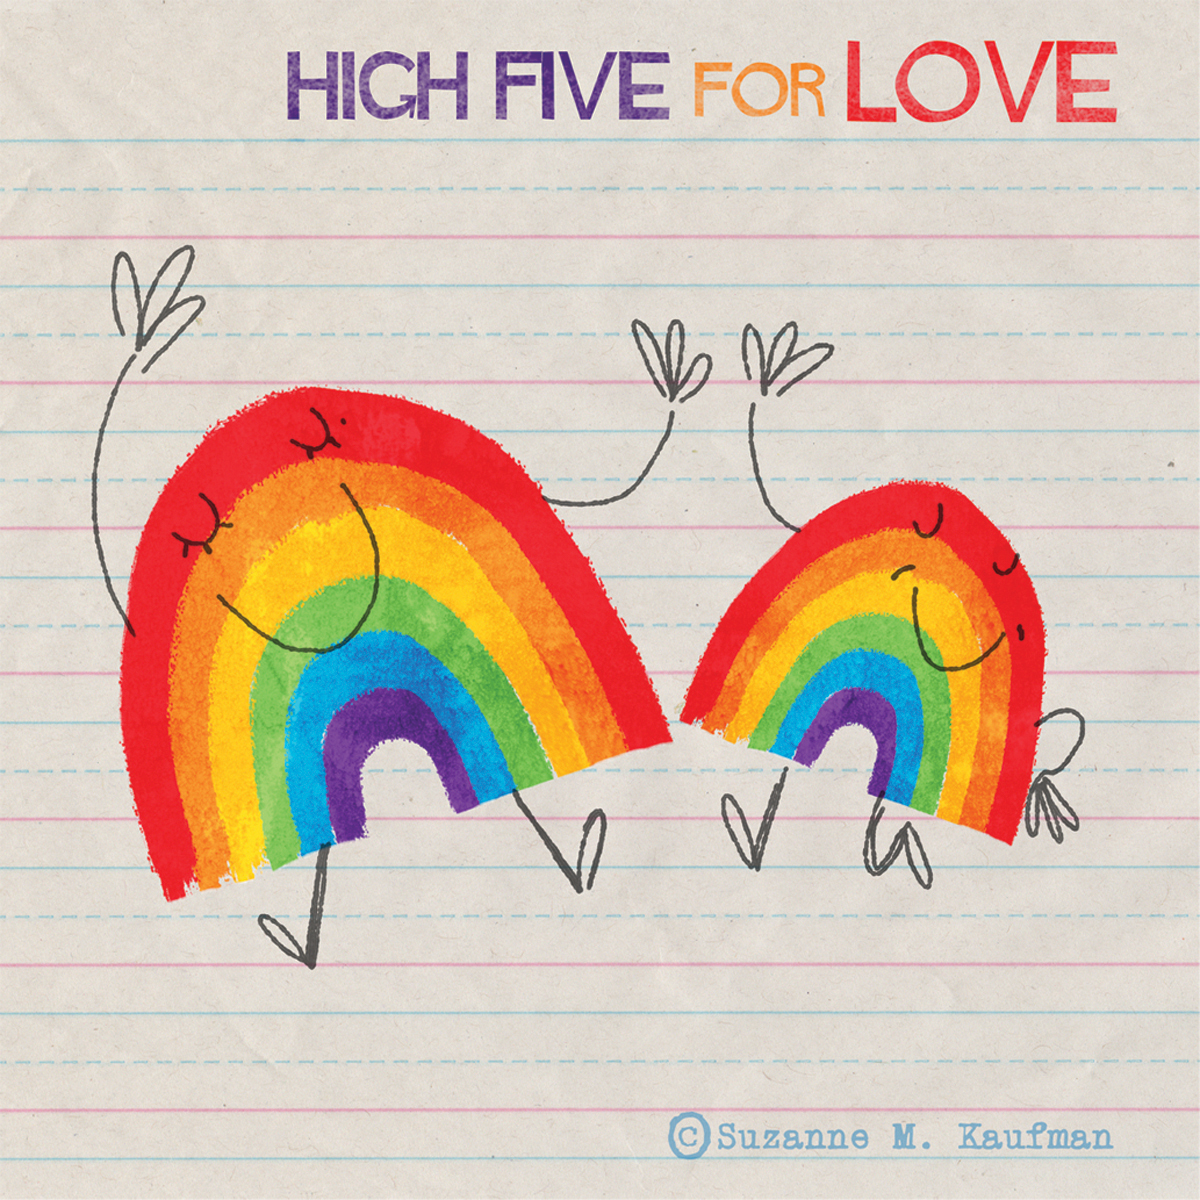 high_five_for_love_web_copyright_suzannekaufman_RGB.jpg